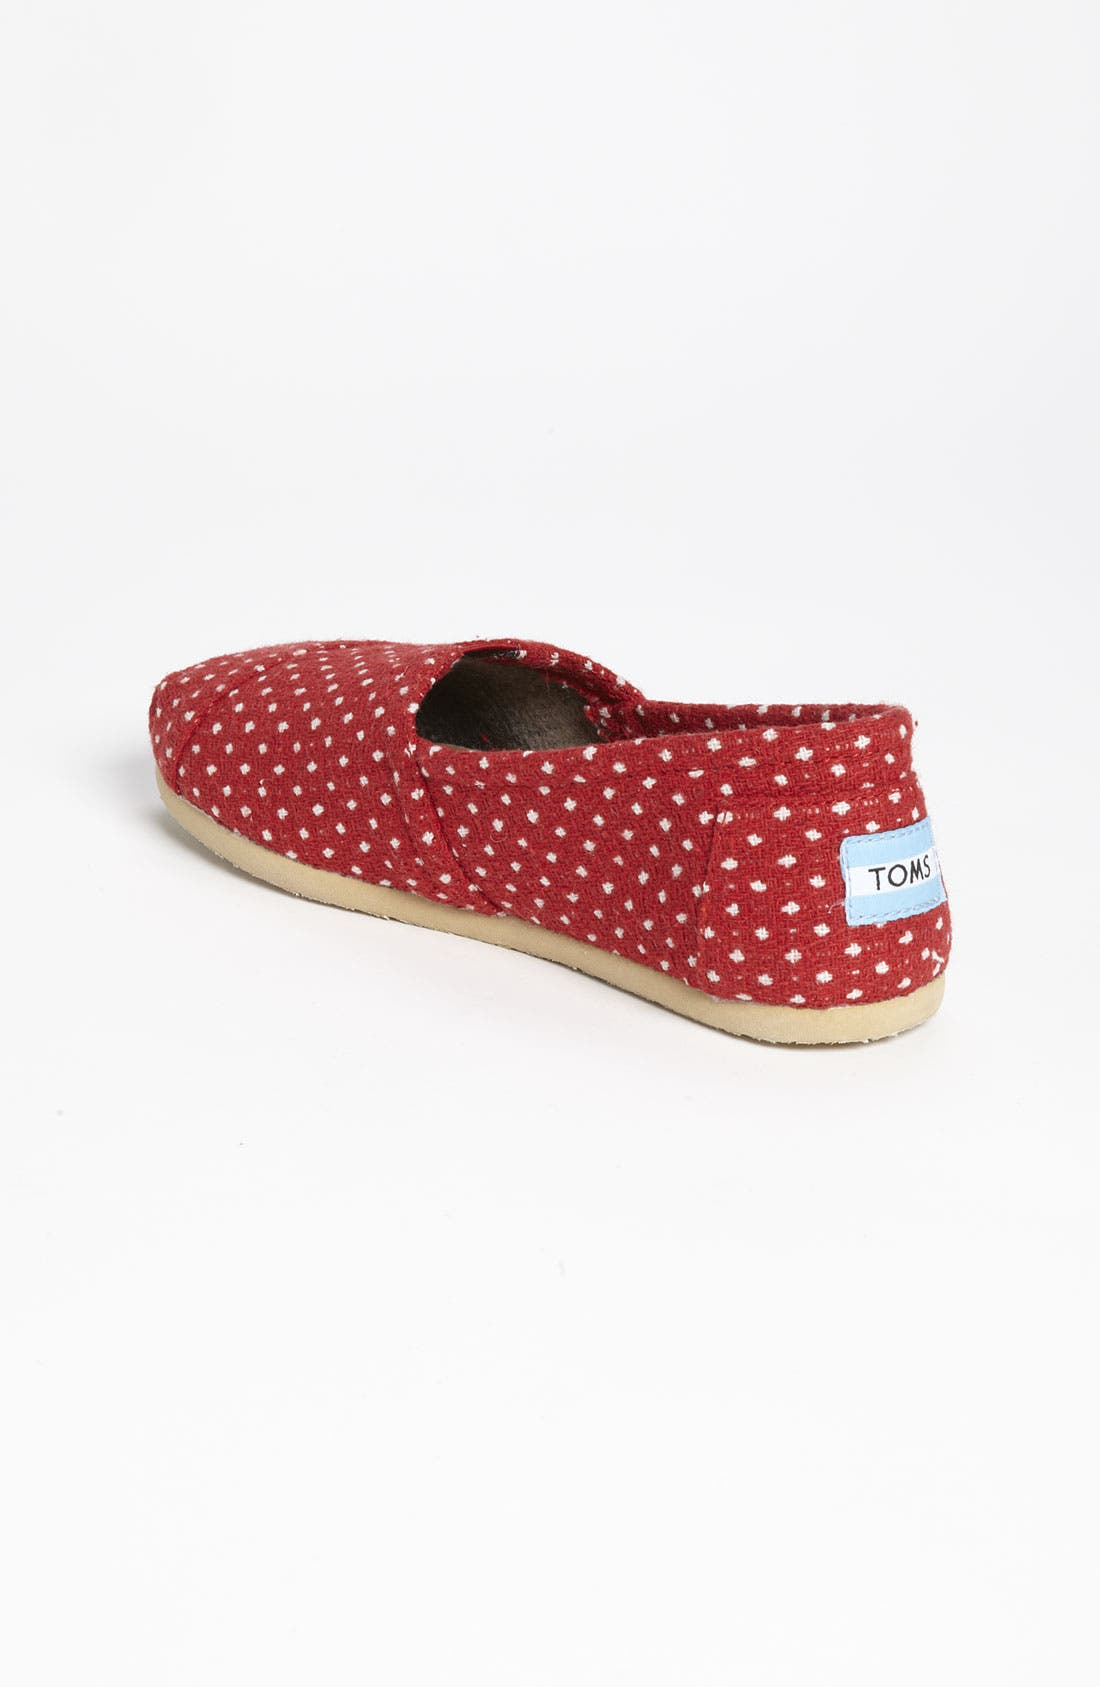 Alternate Image 2  - TOMS 'Classic - Dot' Woolen Slip-On (Women)